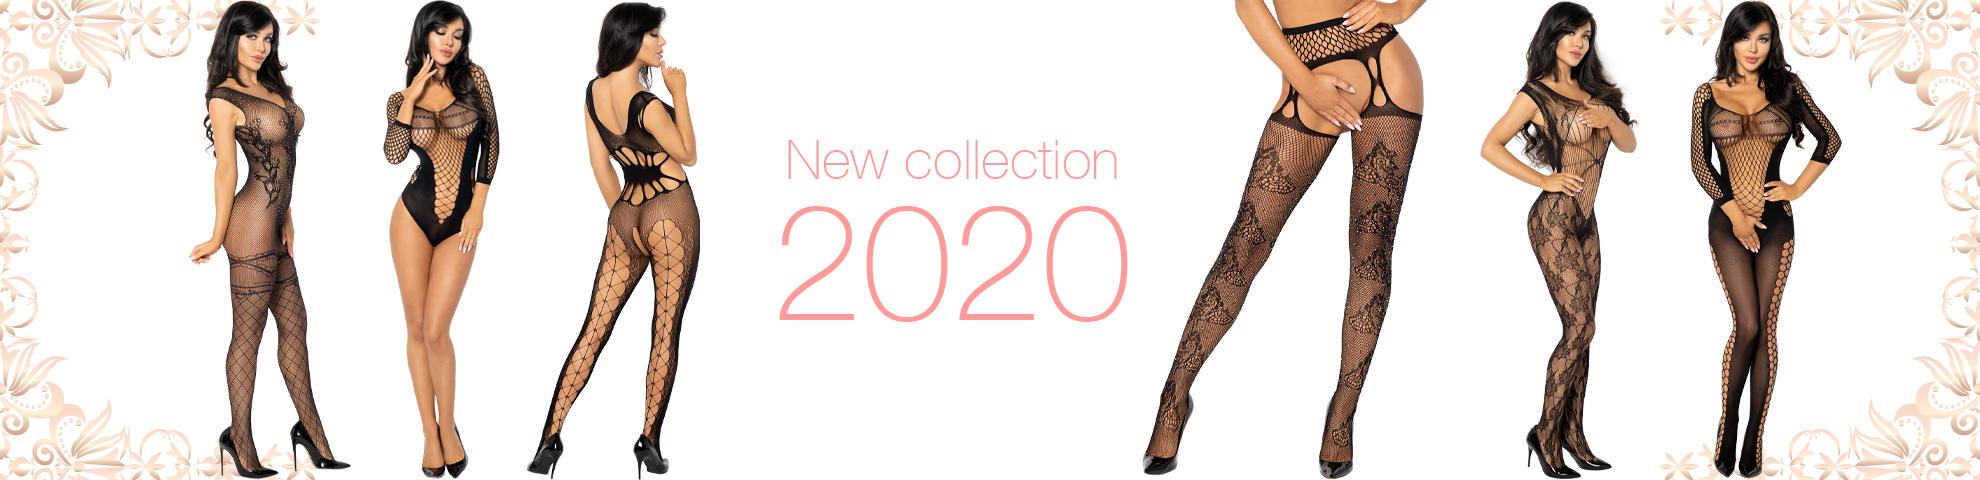 Beauty night bodystocking new collection 2020 slider